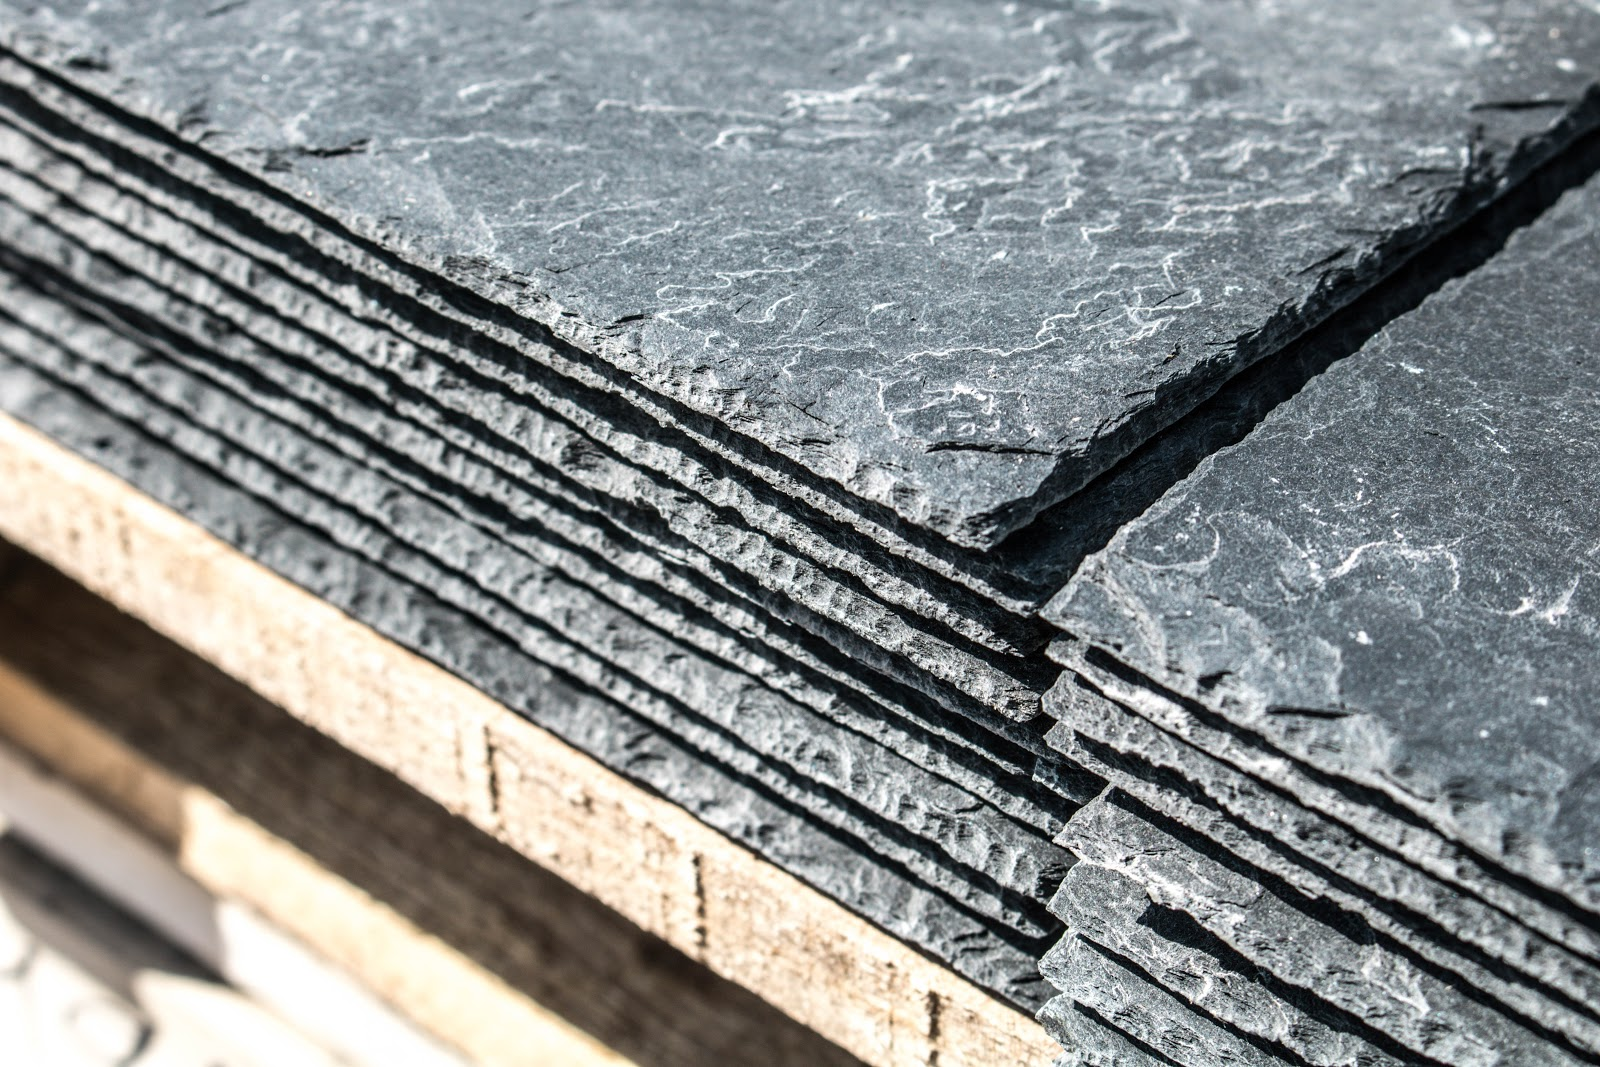 roofing shingles in a pile